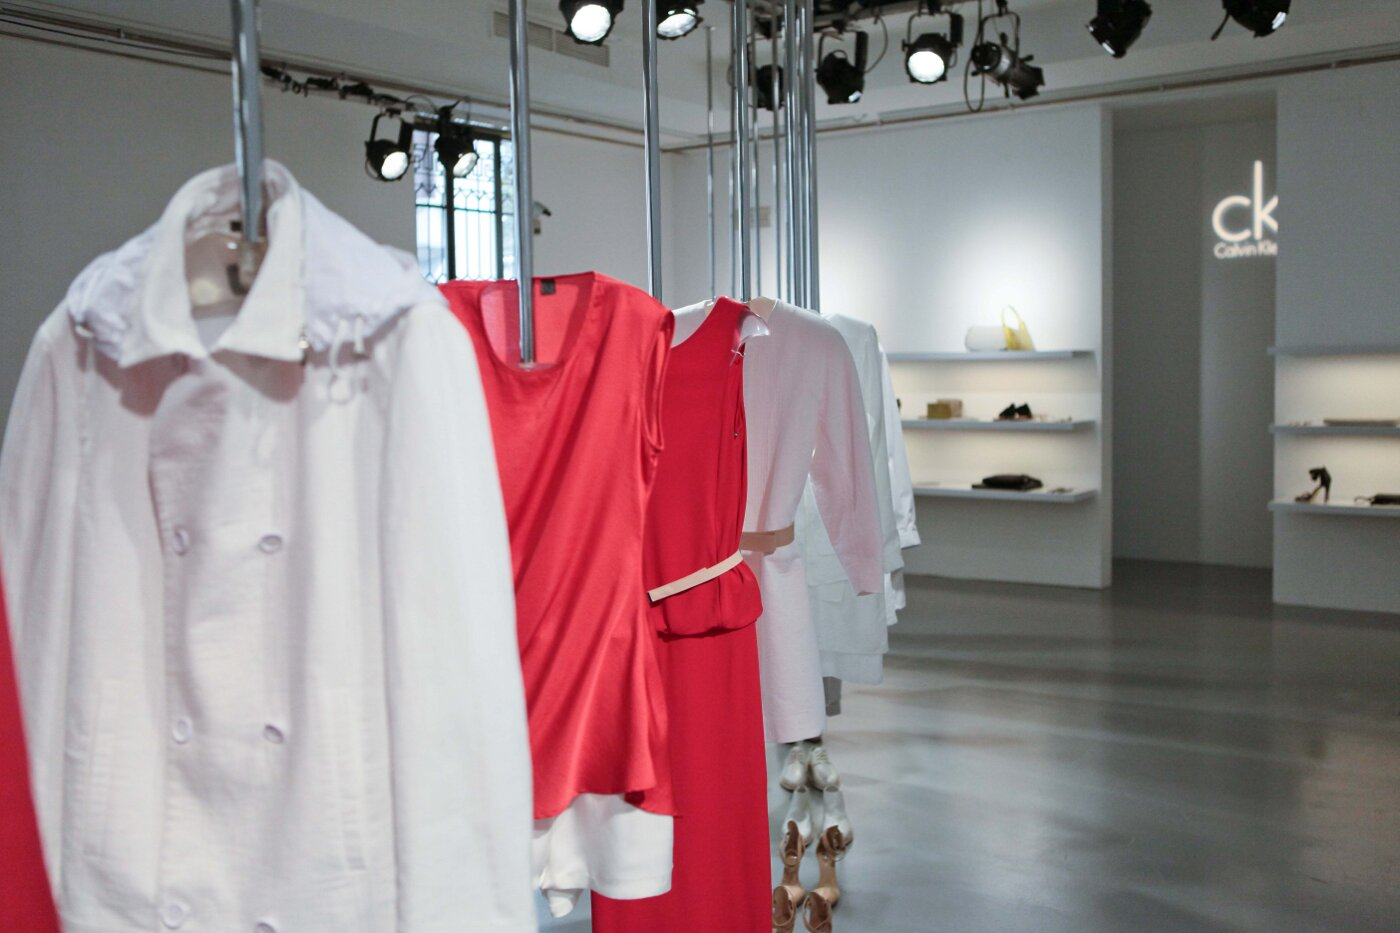 Ck Calvin Klein Spring Collection 2012 Women